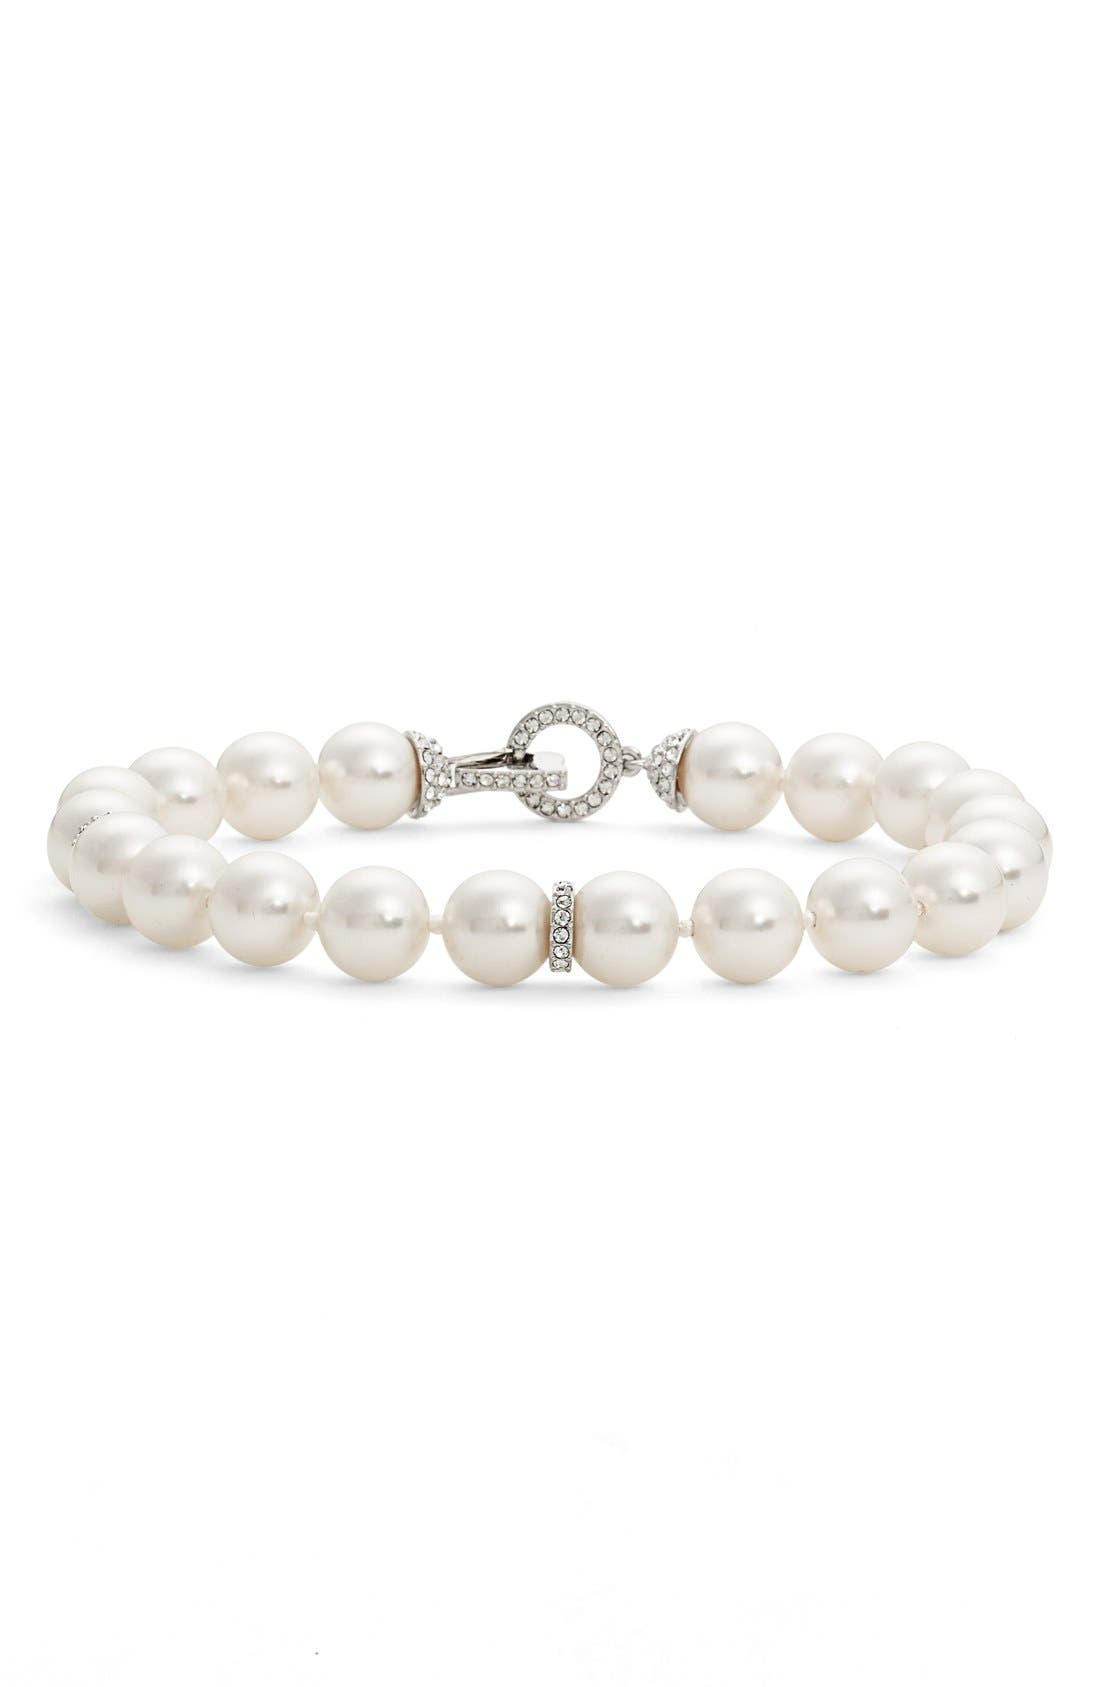 Single Row Imitation Pearl Bracelet,                             Main thumbnail 1, color,                             Ivory